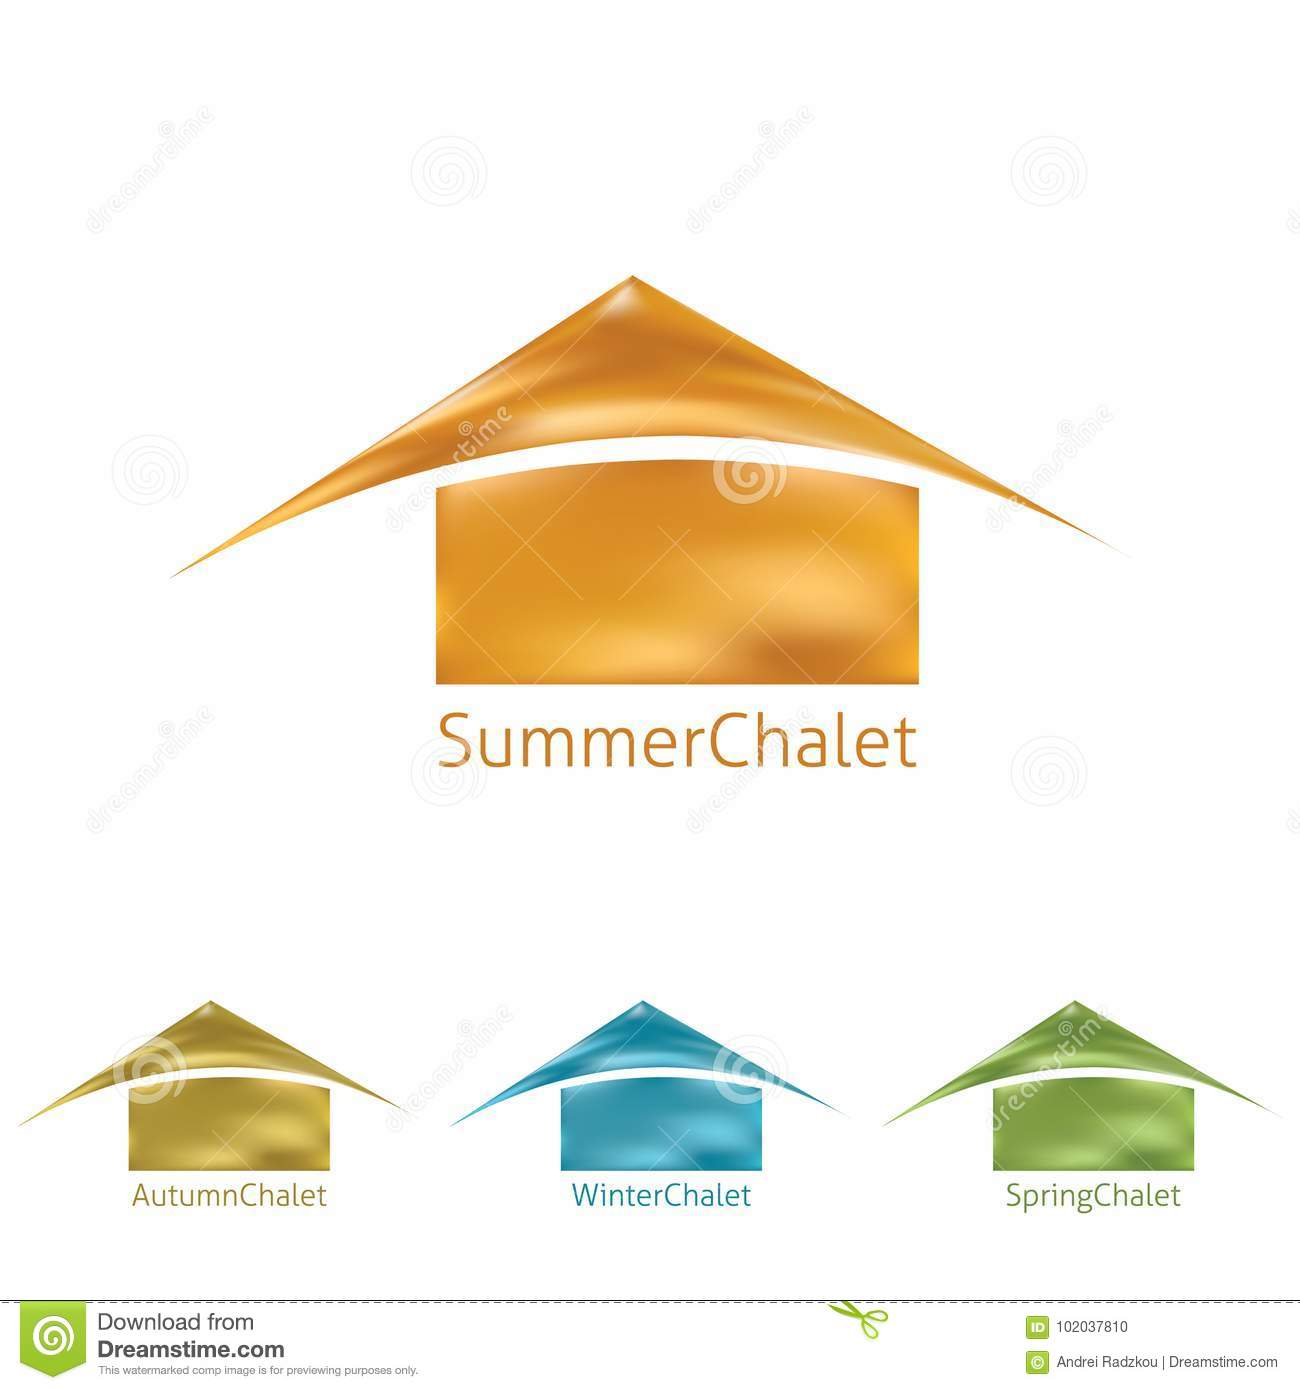 Chalet graphic